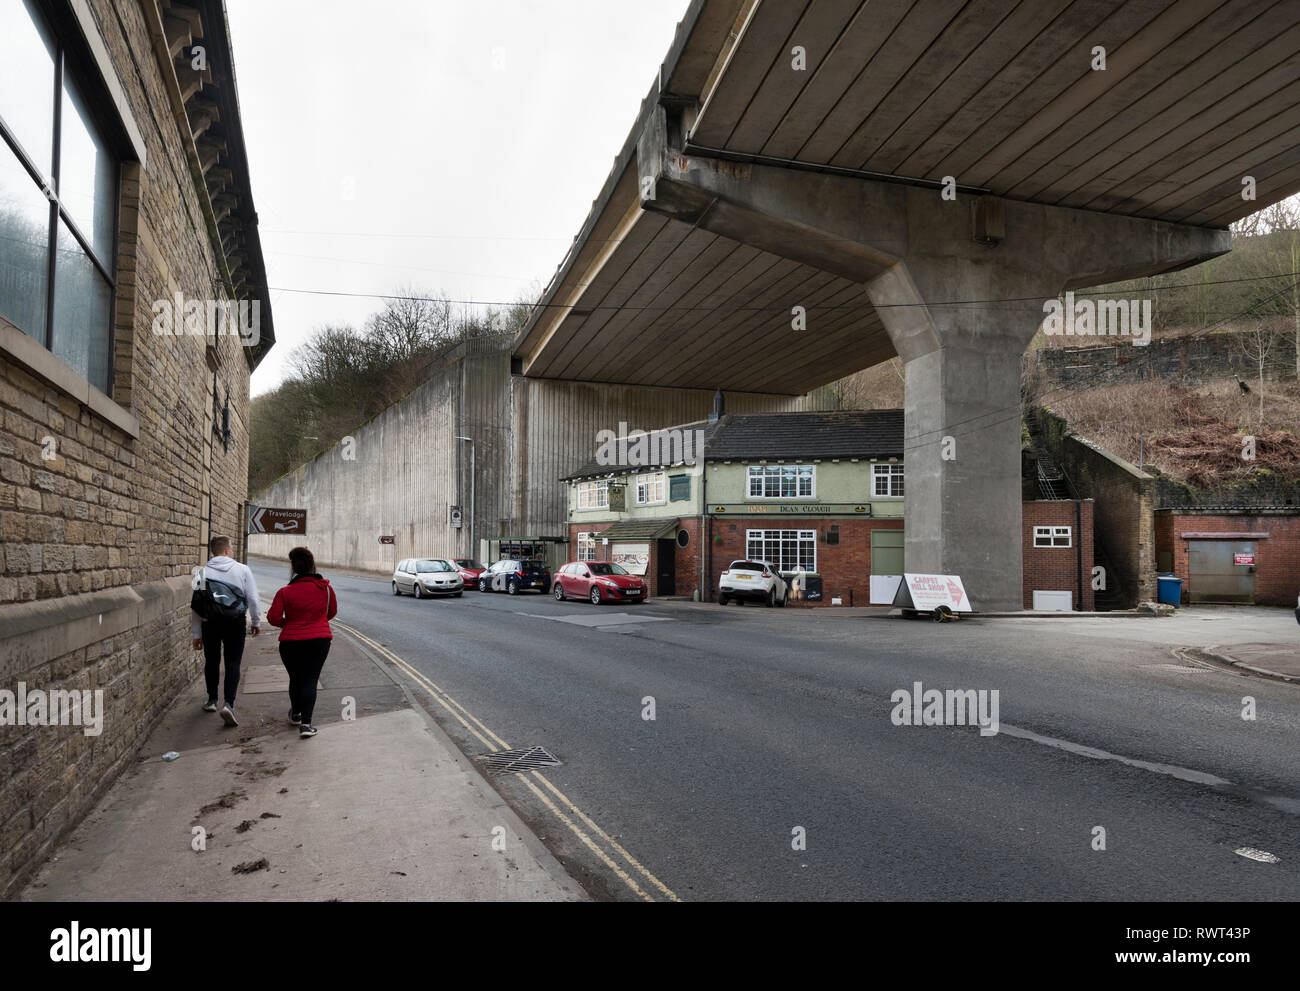 The Dean Clough public house situated under the A629 road flyover, Halifax, West Yorkshire - Stock Image